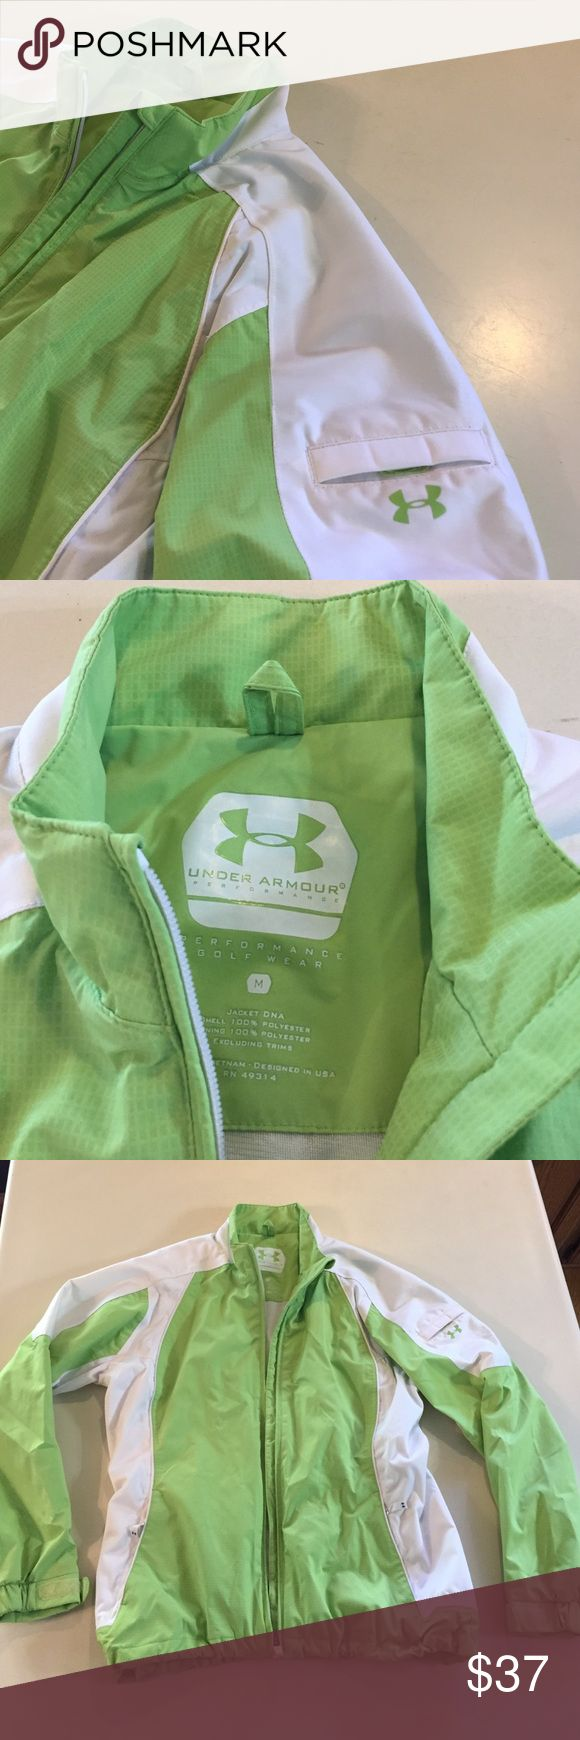 Under Amour Beautiful bright green white jacket In excellent condition. Under Amour performance jacket . Perfect for golf wear or anywhere!! 100% polyester wind resistant and waterproof size medium Under Armour Jackets & Coats